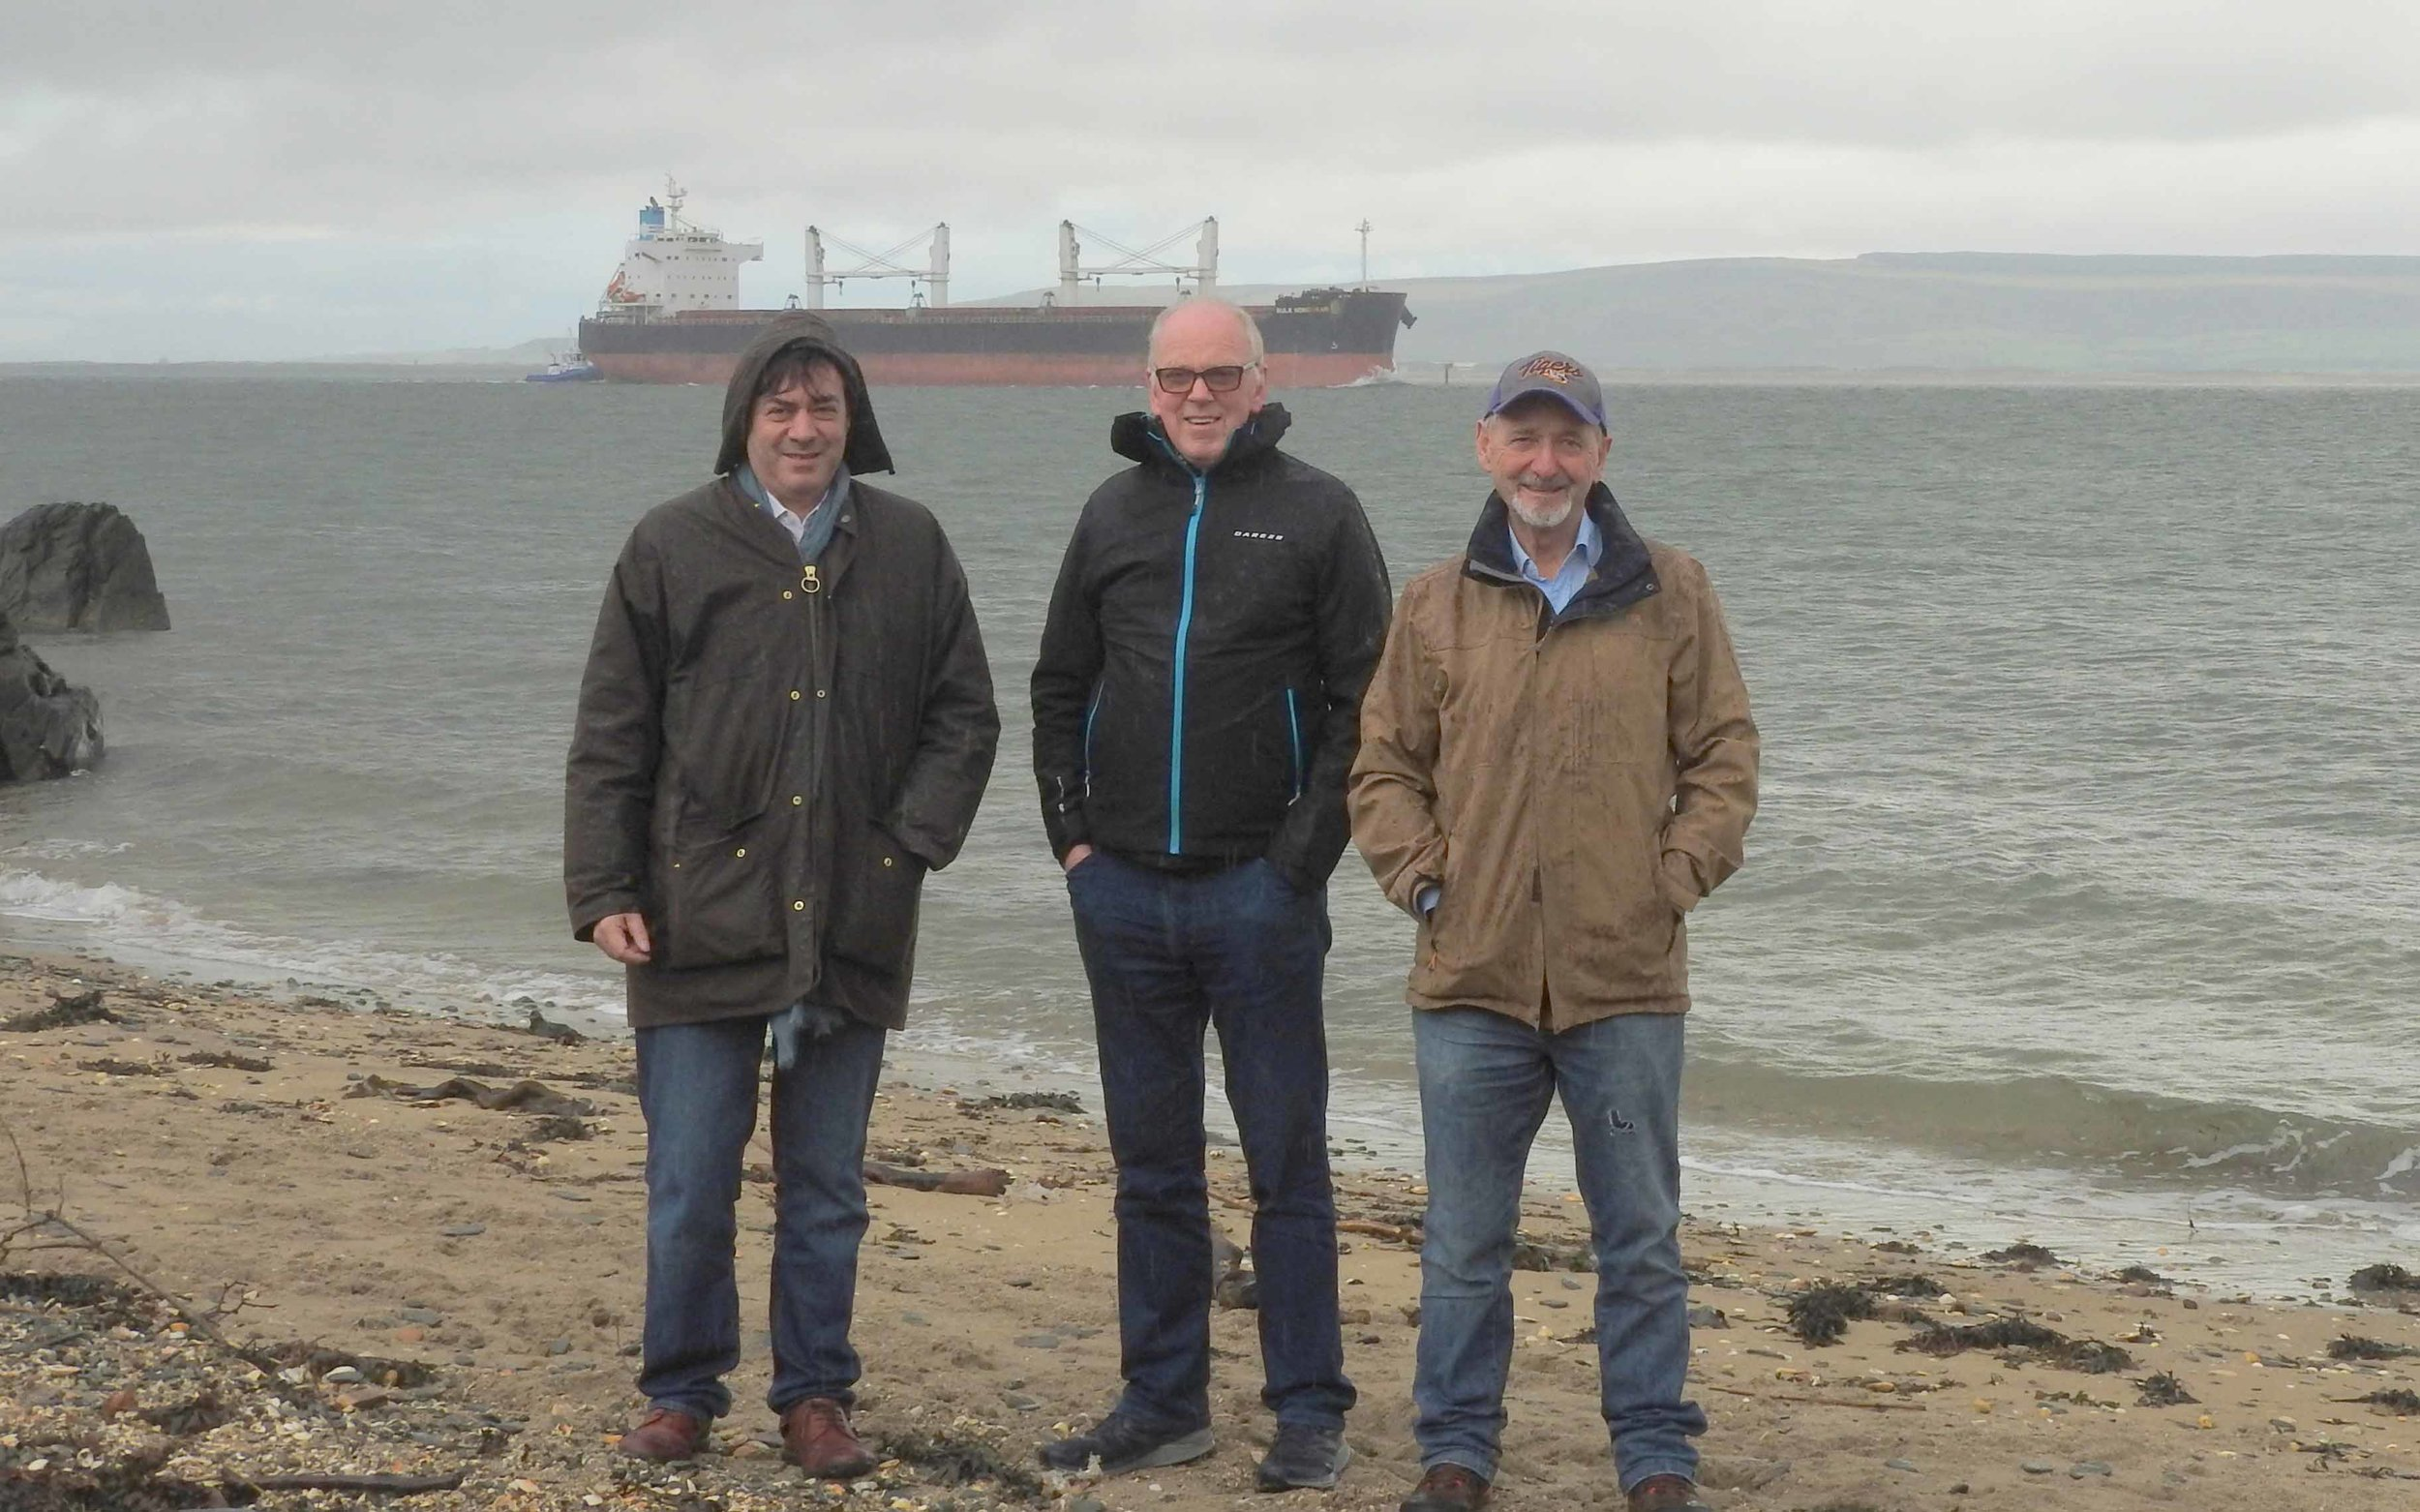 Campaigners John Gore, Dr Don McGinley and Enda Craig at the site where the outfall will carry sewage into Lough Foyle behind them. Image: Paddy Clancy.